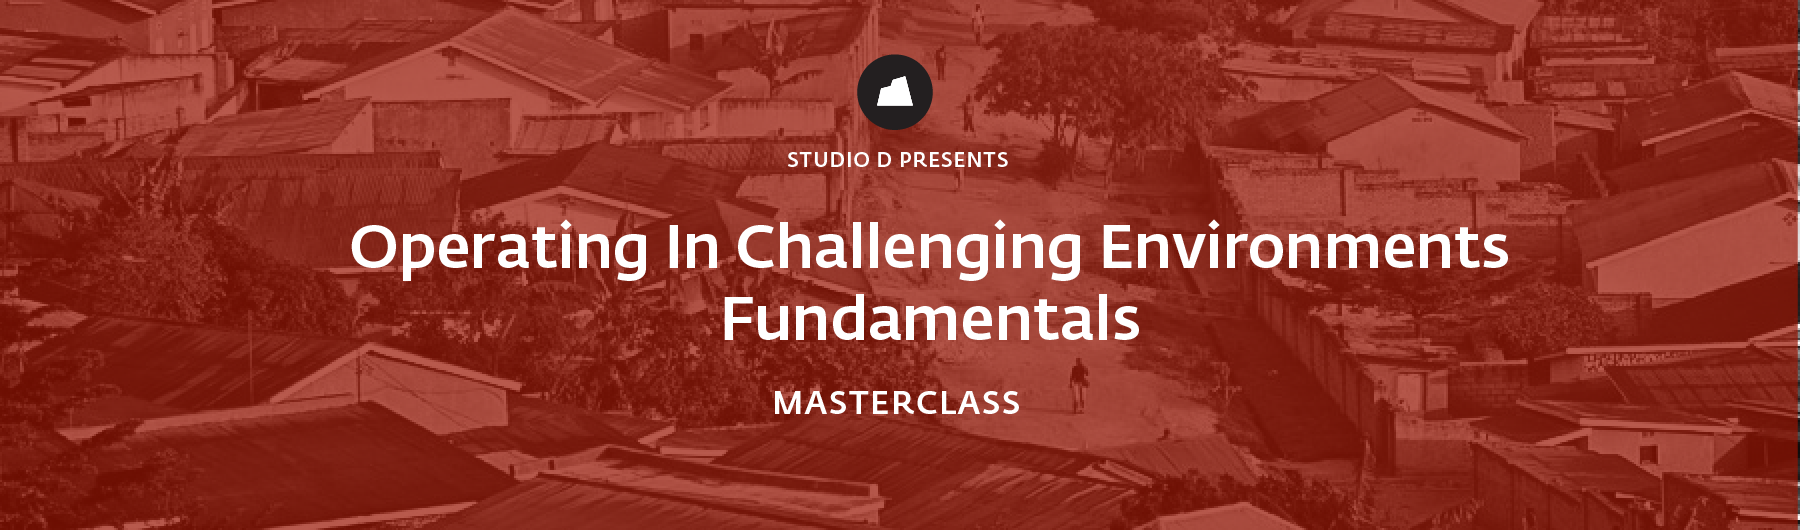 Operating in Challenging Environments, Fundamentals Masterclass, 25 March 2020, San Francisco